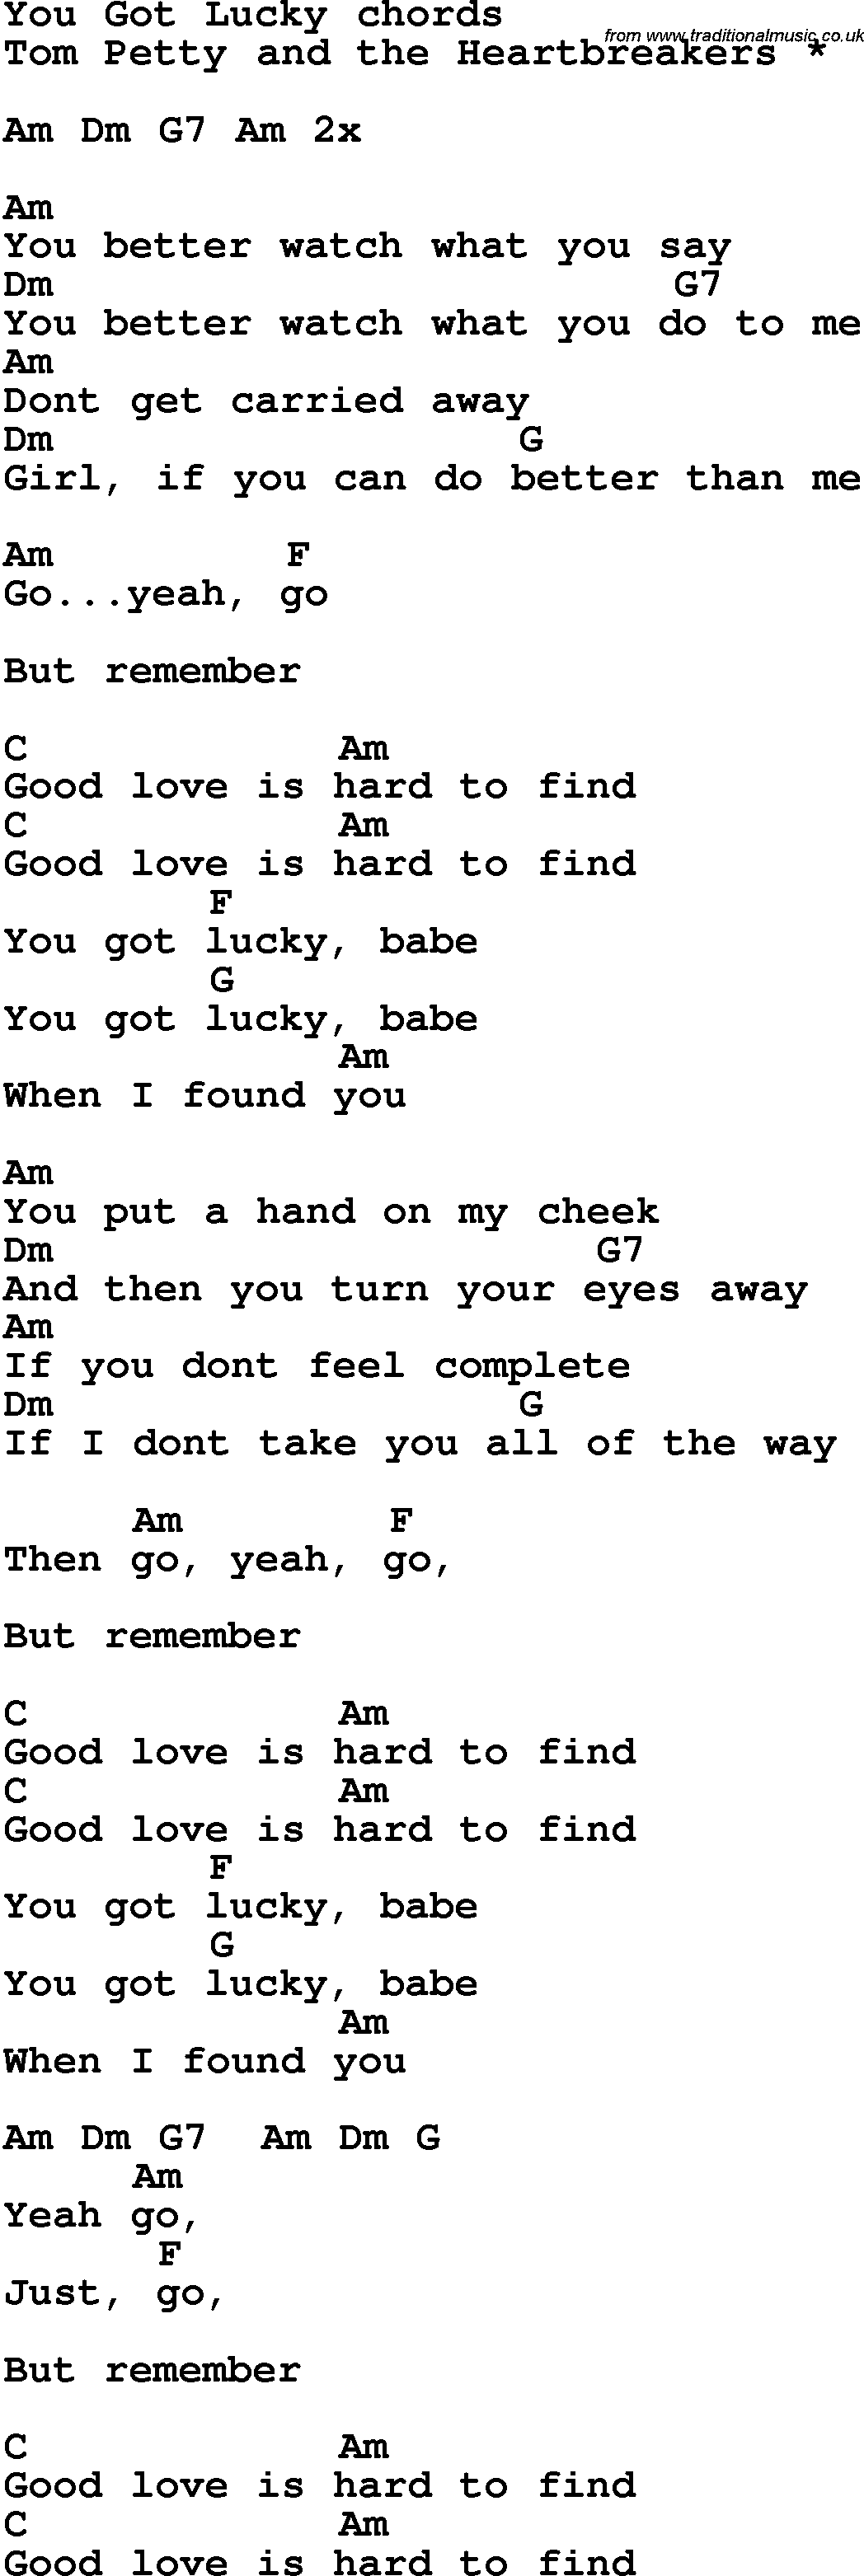 Song lyrics with guitar chords for You Got Lucky